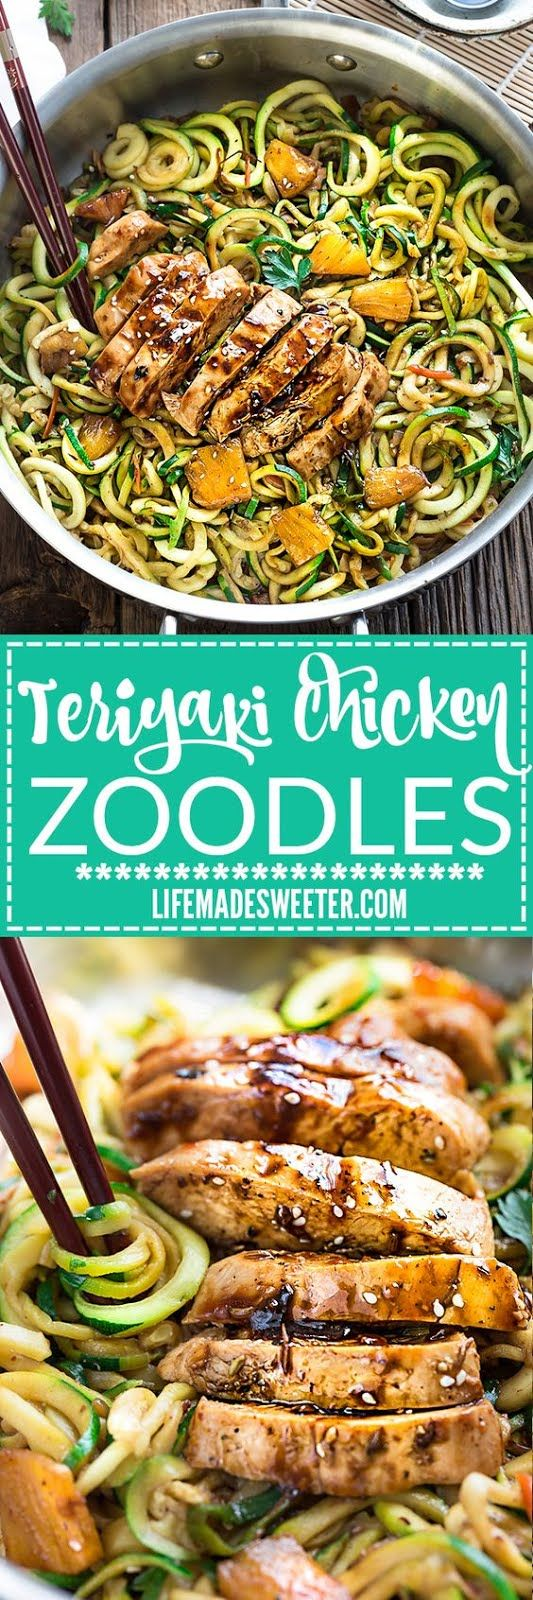 One Pot Teriyaki Chicken Zoodles: